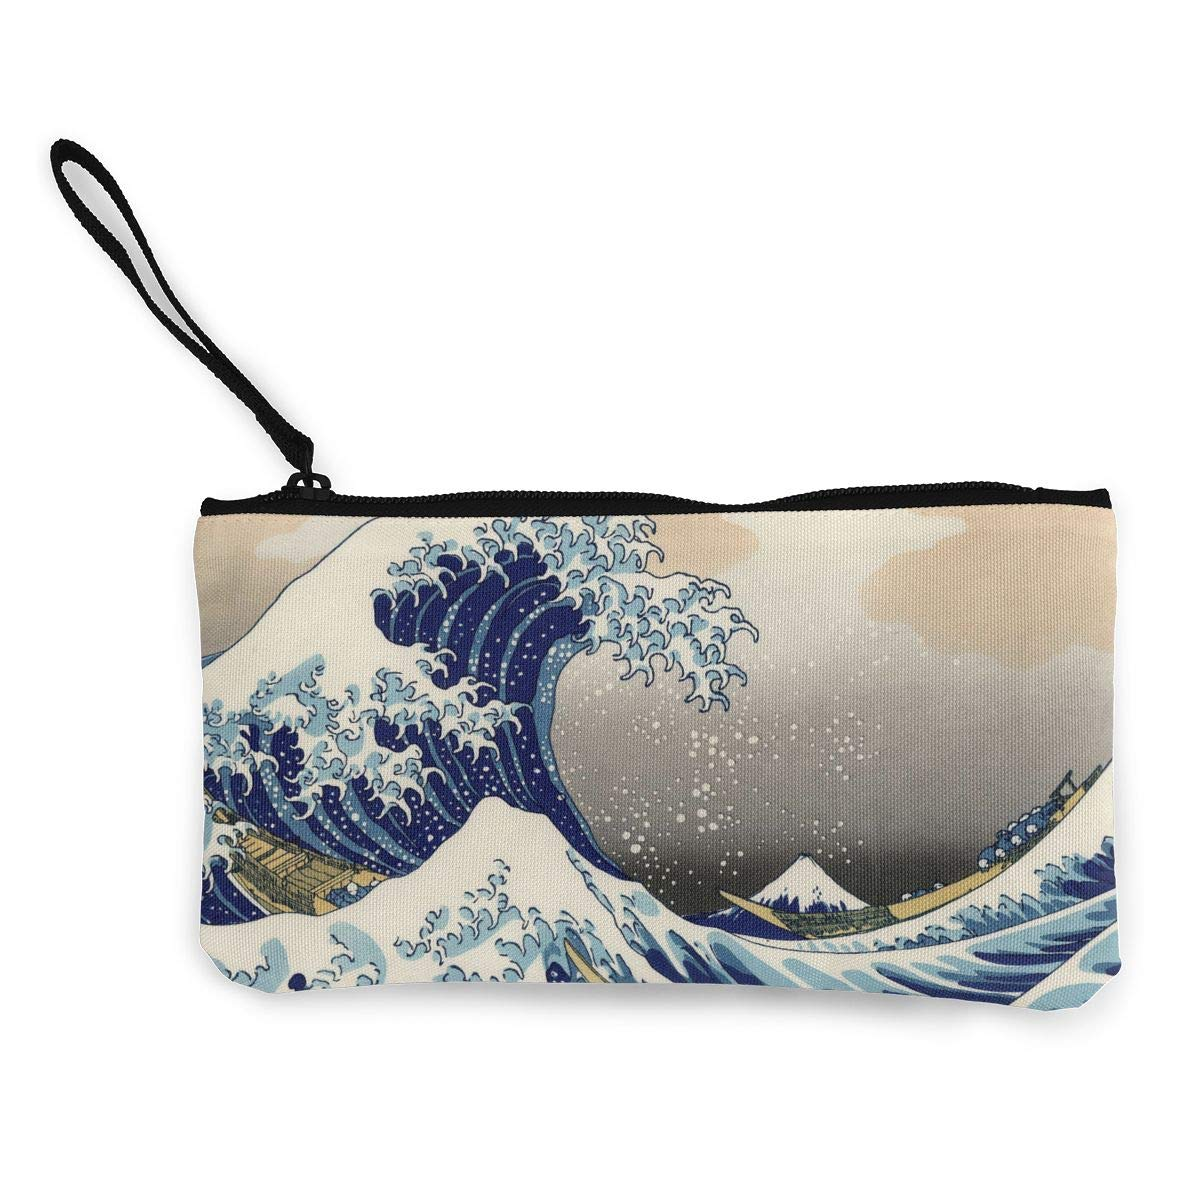 Maple Memories Japanese Style Seawave Portable Canvas Coin Purse Change Purse Pouch Mini Wallet Gifts For Women Girls